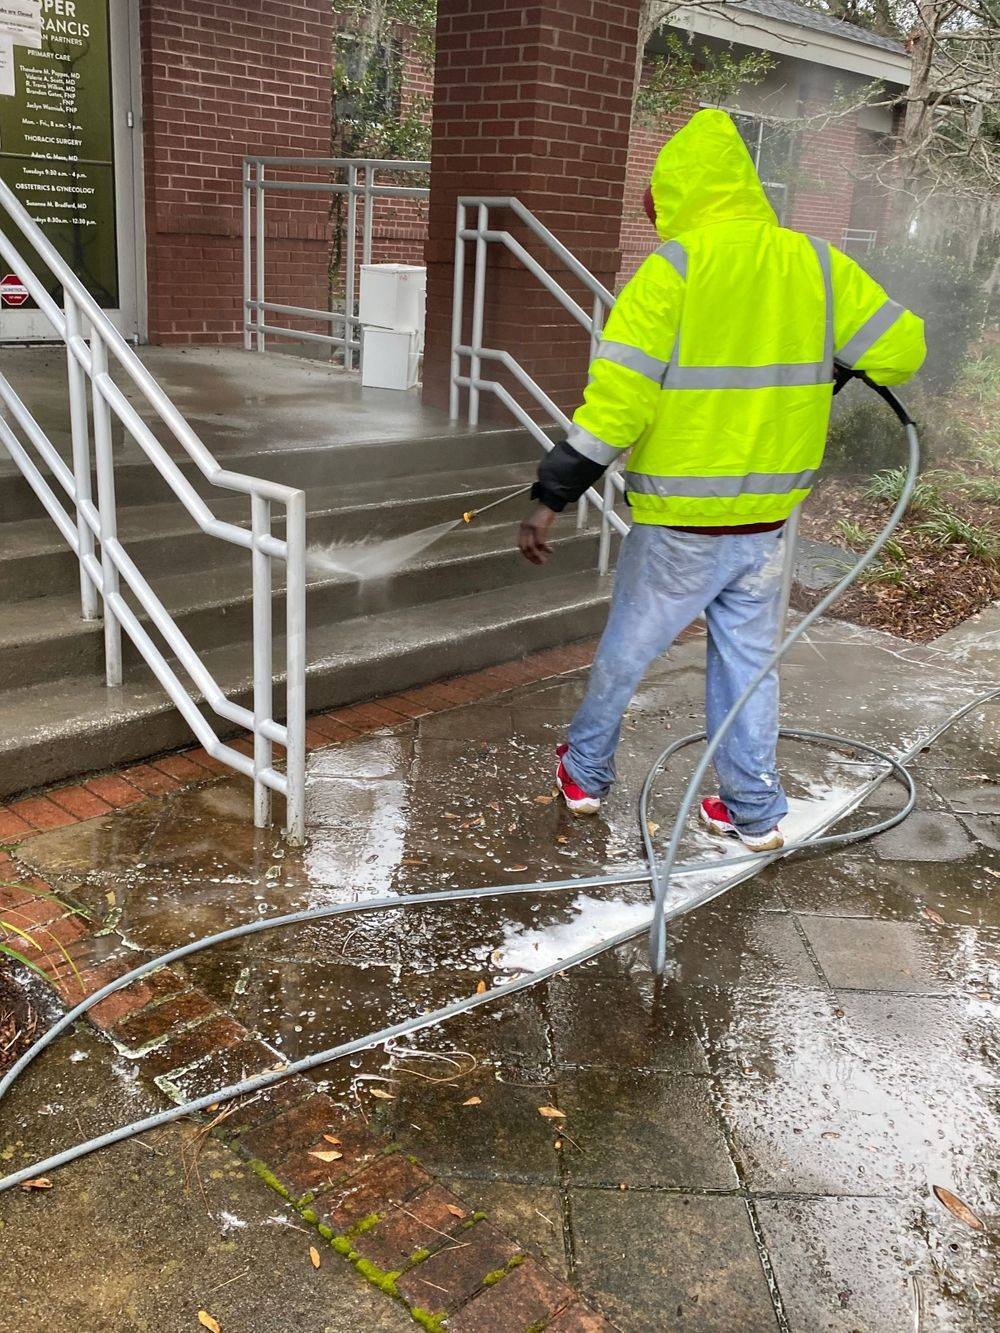 Concrete cleaning, driveway cleaning, powerwash driveway, pressure wash driveway, sidewalk powerwash, powerwash patio, power wash porch, driveway cleaning in Charleston, sc,